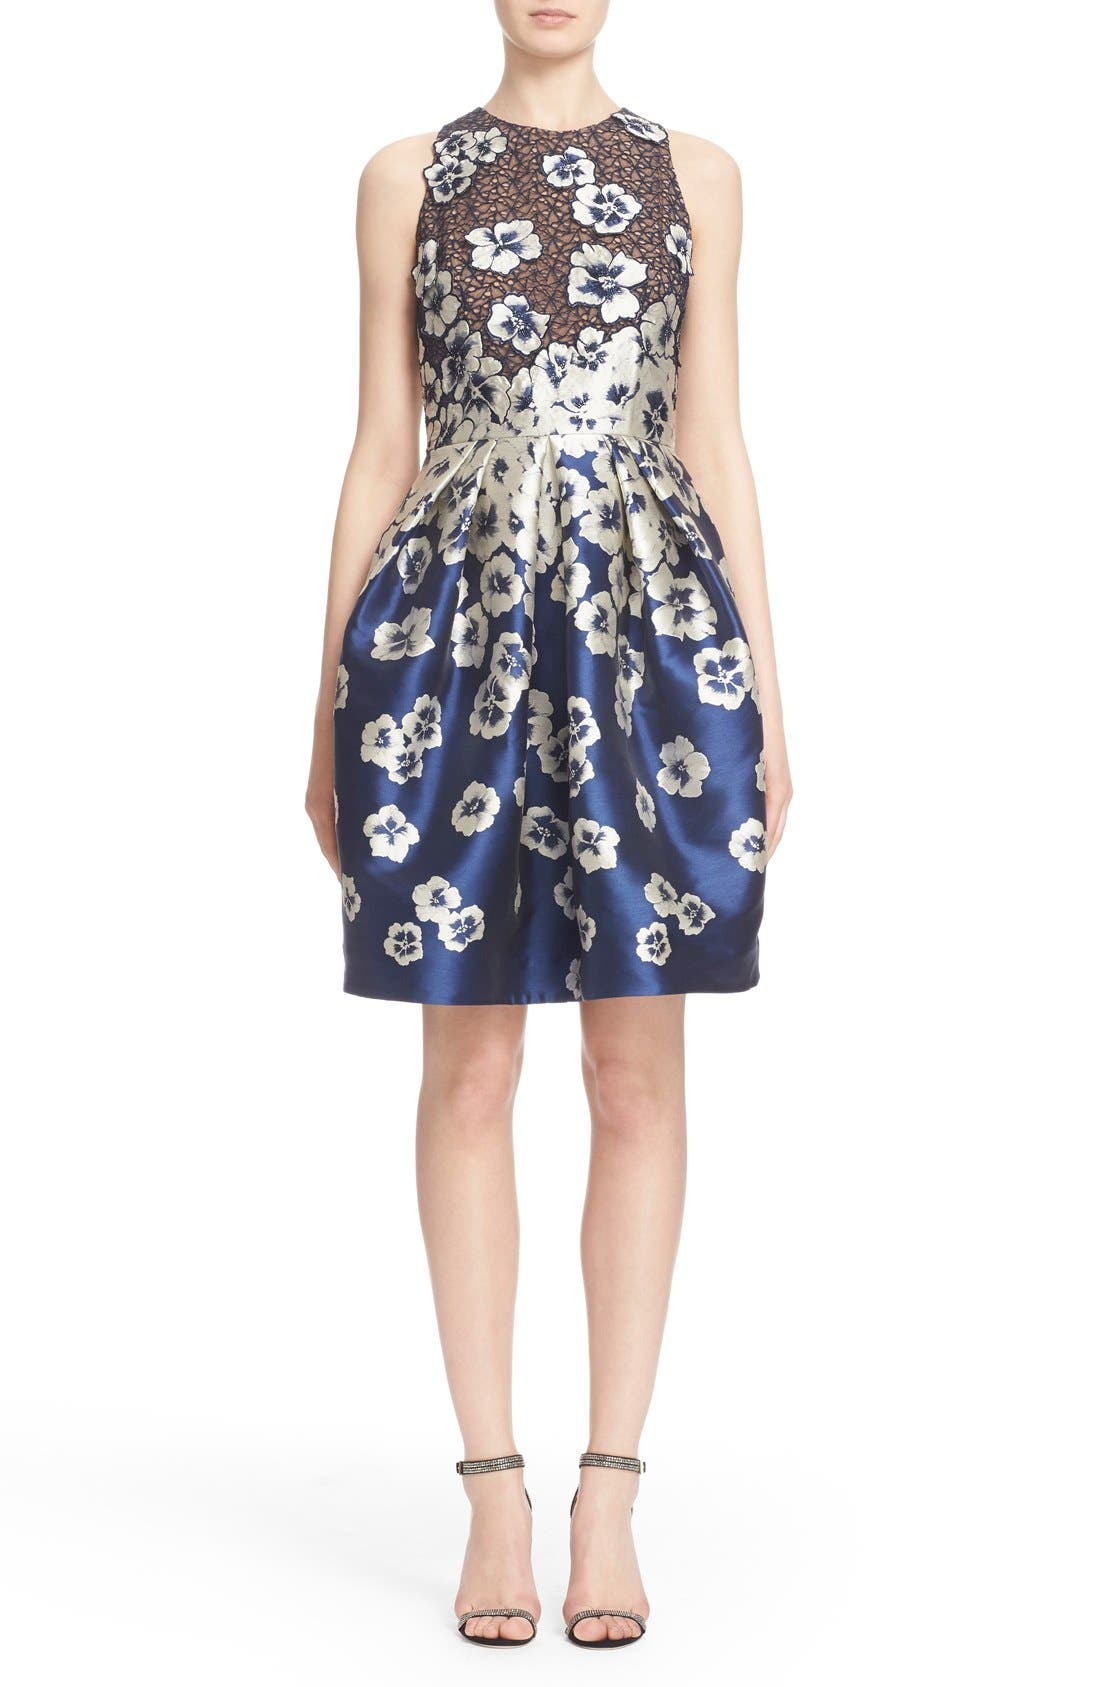 Main Image - Carmen Marc Valvo Couture Floral Appliqué Cutaway Cocktail Dress